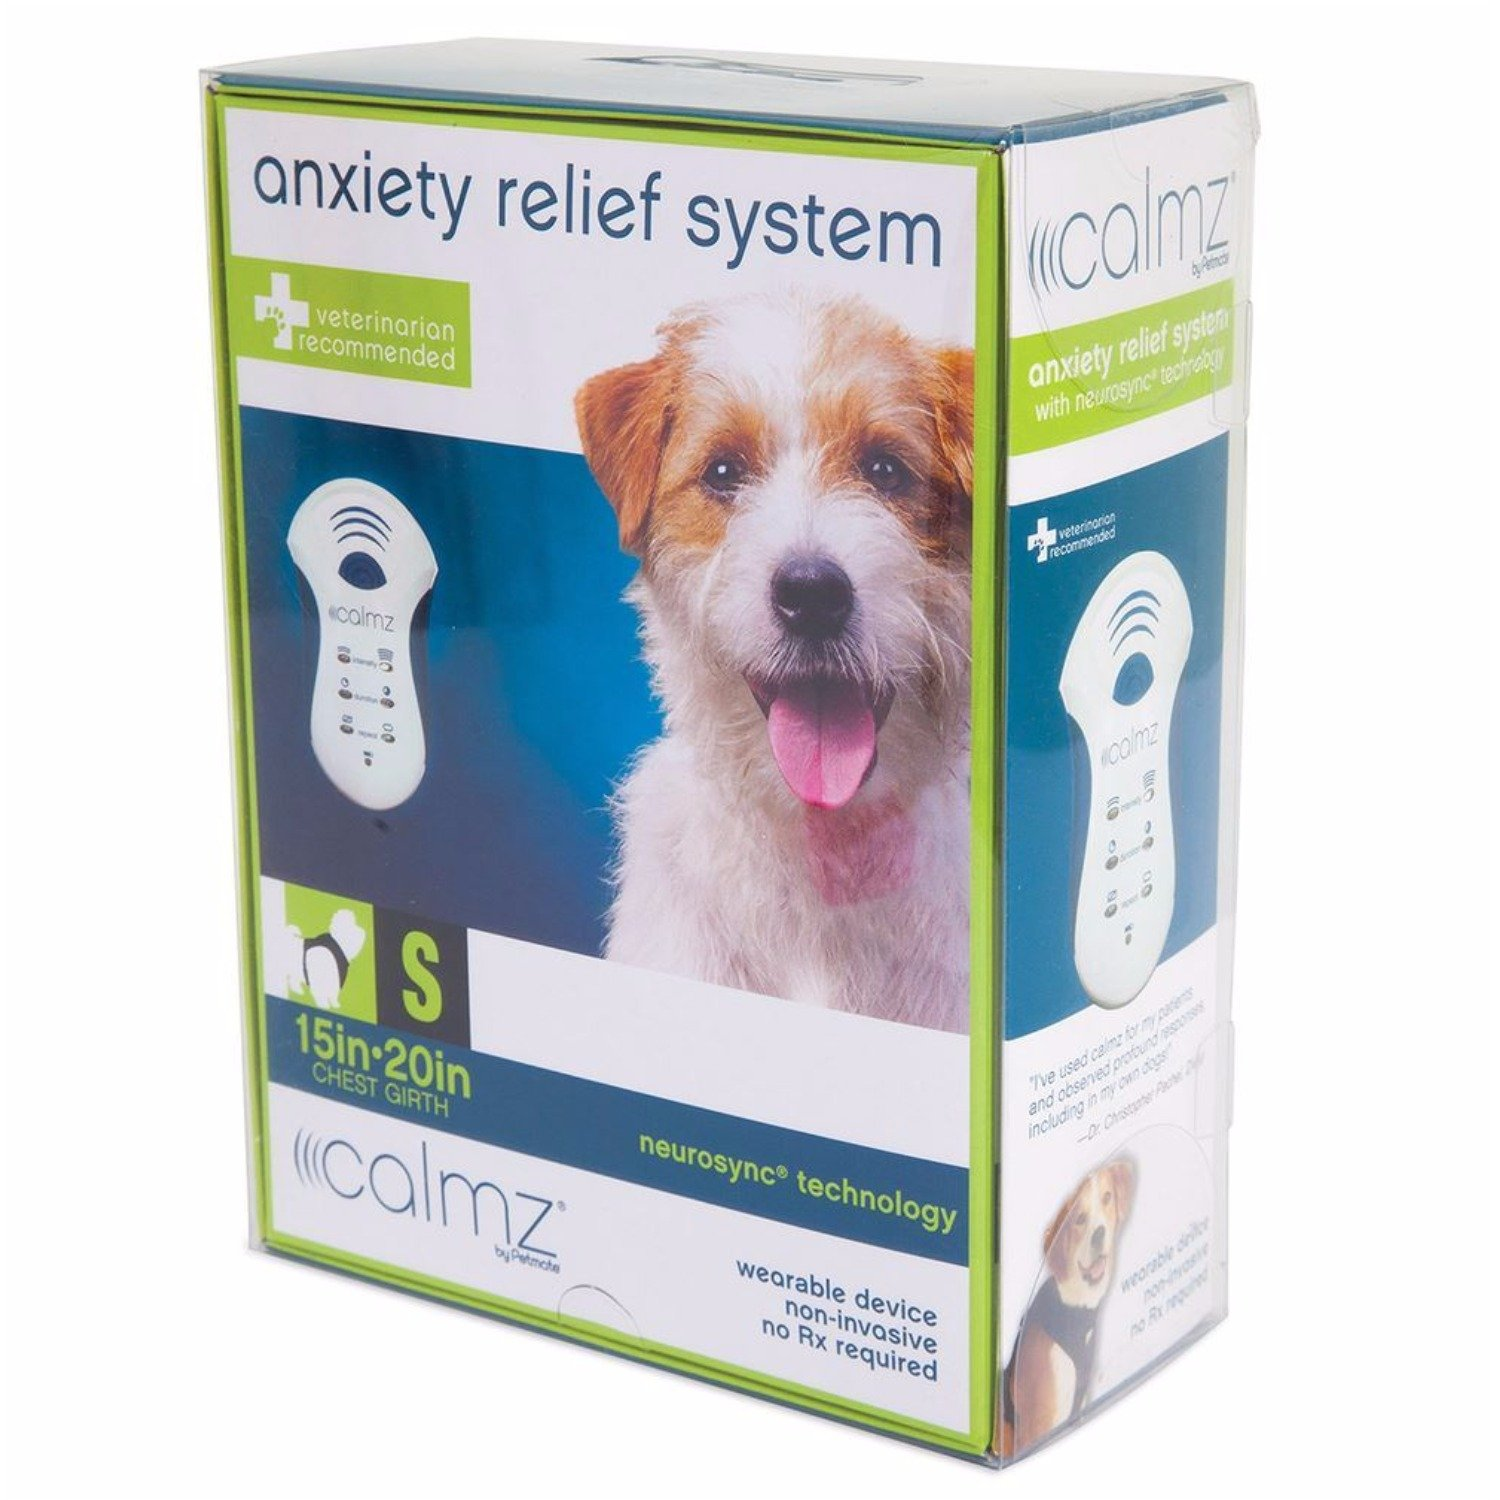 Petmate Calmz Anxiety Relief System for Dogs, Small